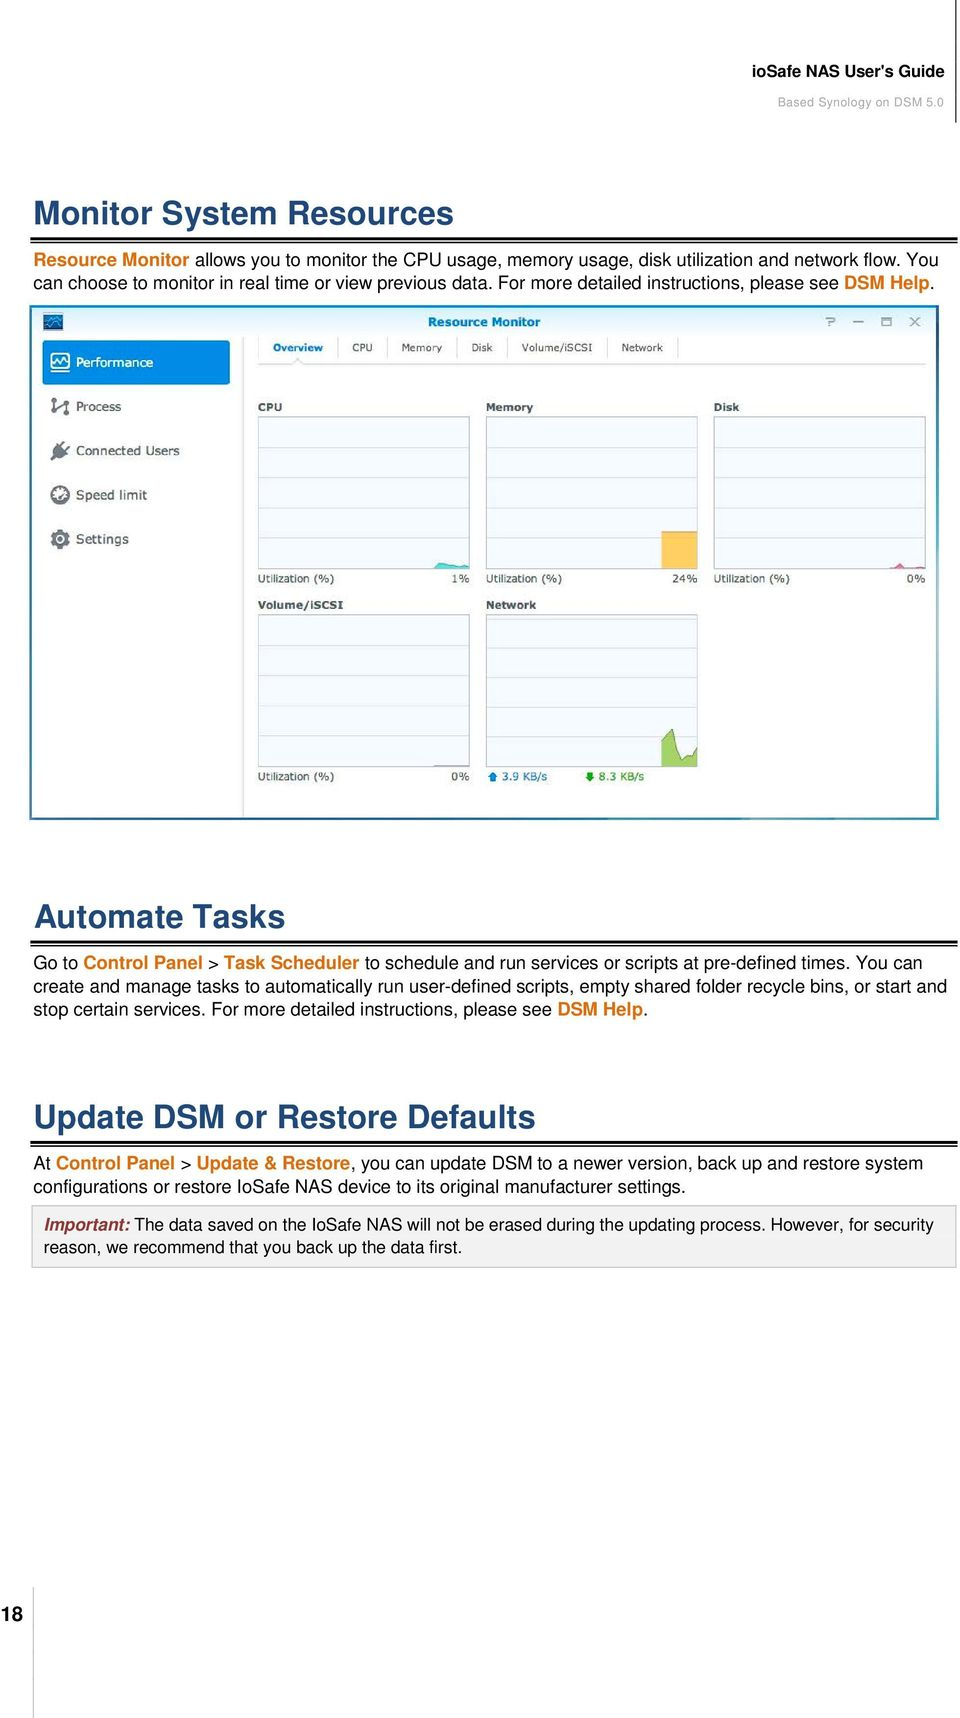 You can create and manage tasks to automatically run user-defined scripts, empty shared folder recycle bins, or start and stop certain services. For more detailed instructions, please see DSM Help.